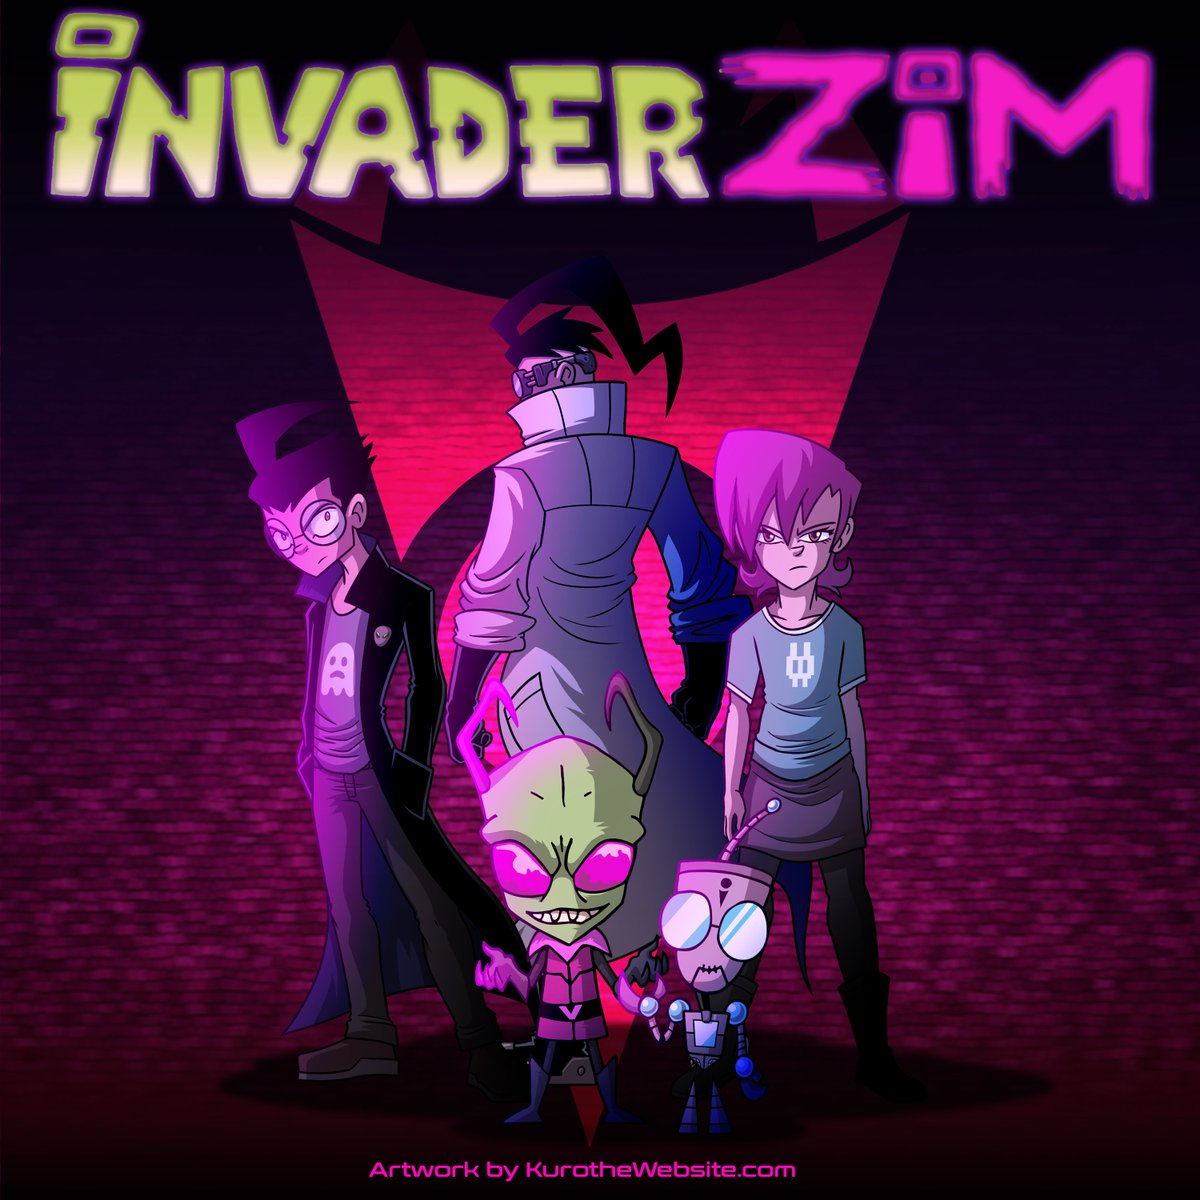 Saw Enter the Florpus and it was definitely worth the wait. Had me so hyped, I dropped everything to make this! Fantastic film. Going to have to rewatch it to take everything in. #InvaderZim #invaderzimentertheflorpus #EnterTheFlorpus